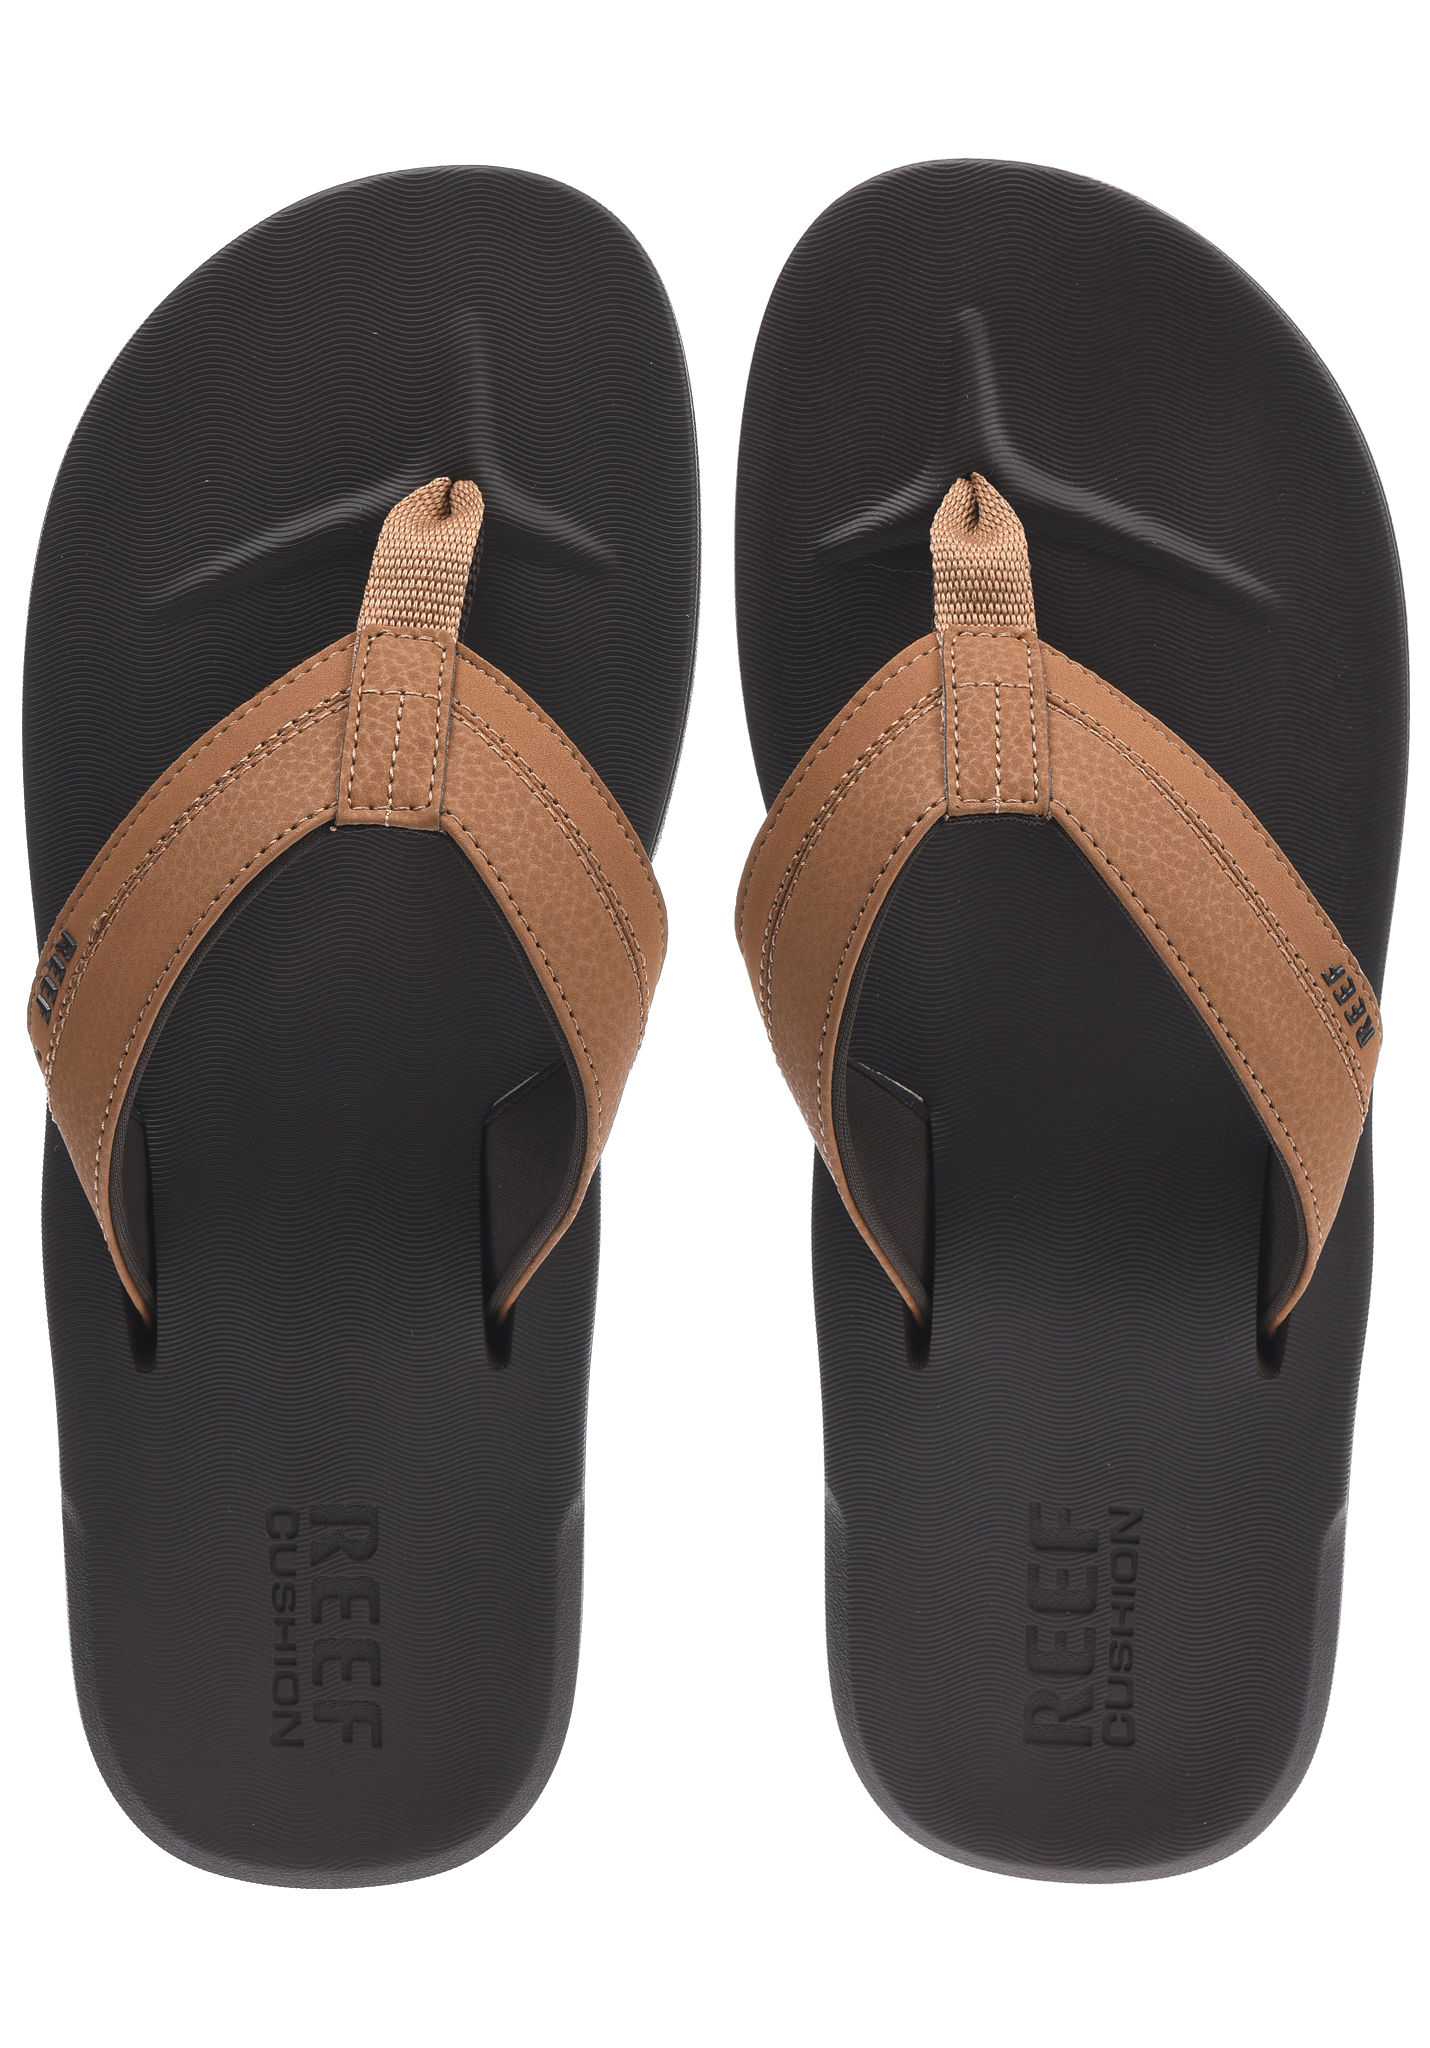 1a5ec91e1b94 Reef Contoured Cushion - Sandals for Men - Brown - Planet Sports